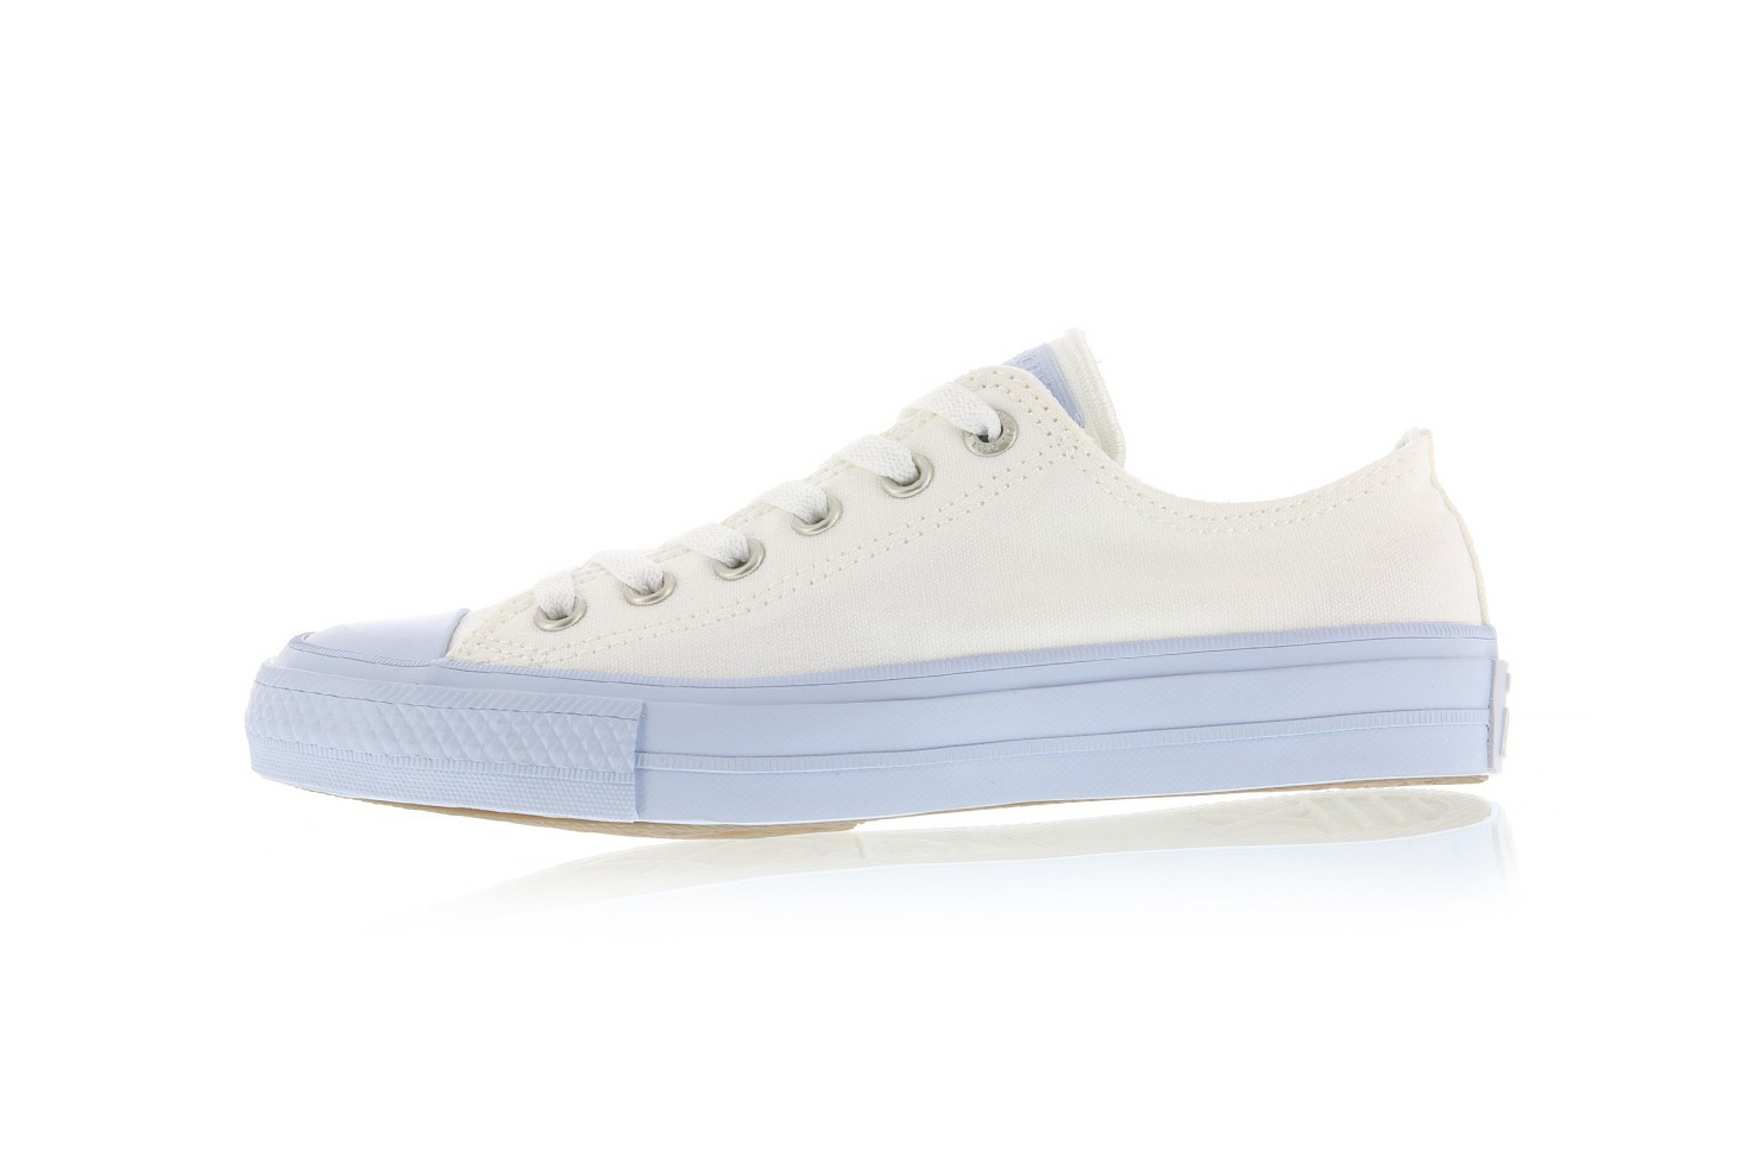 Converse Colors the Sole Pastel on a